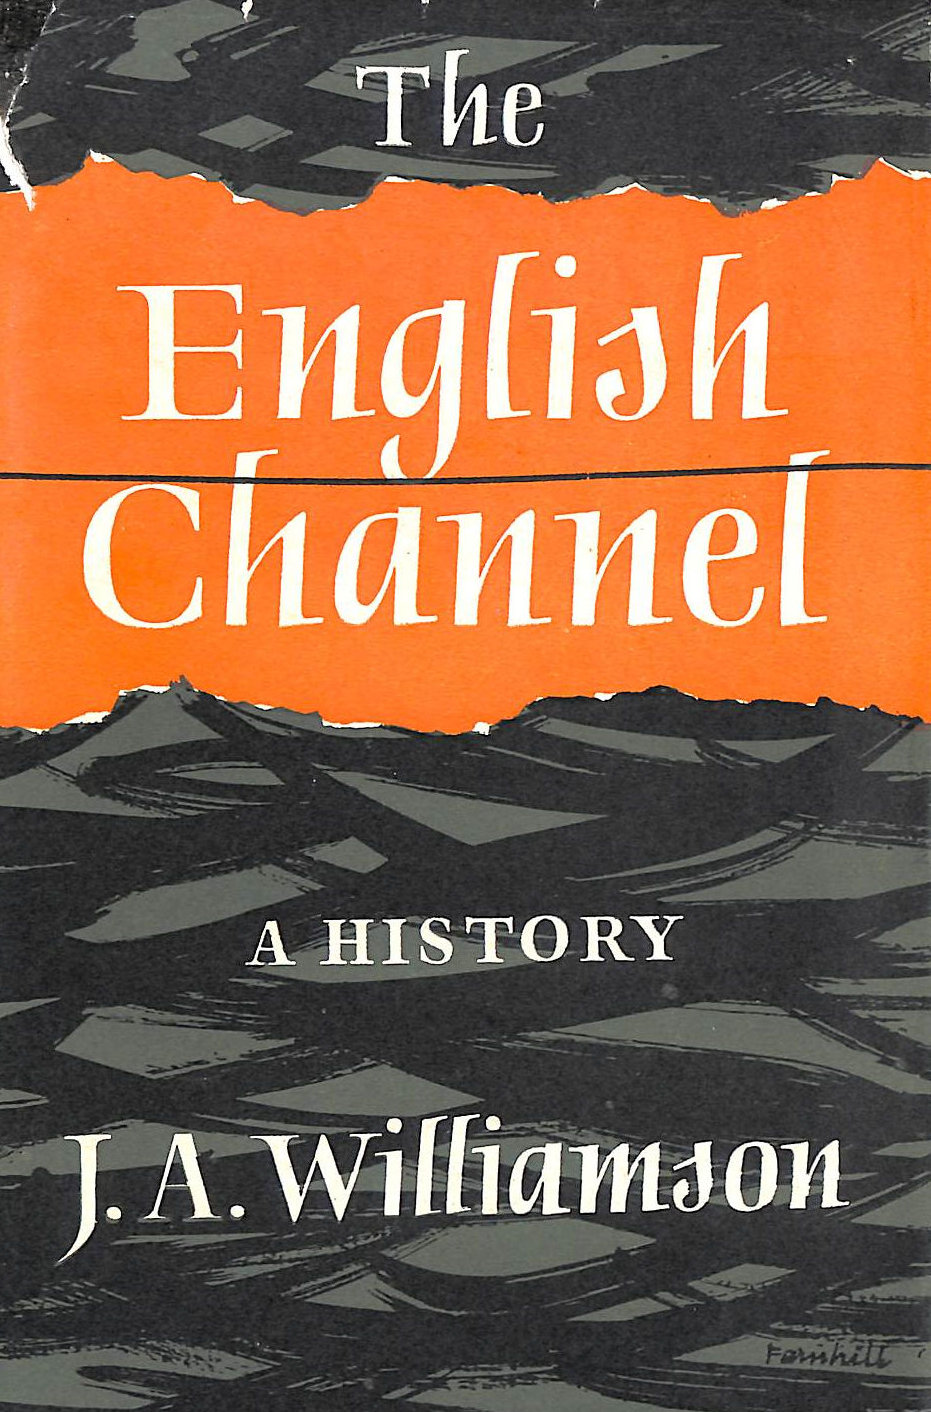 Image for The English Channel, A History